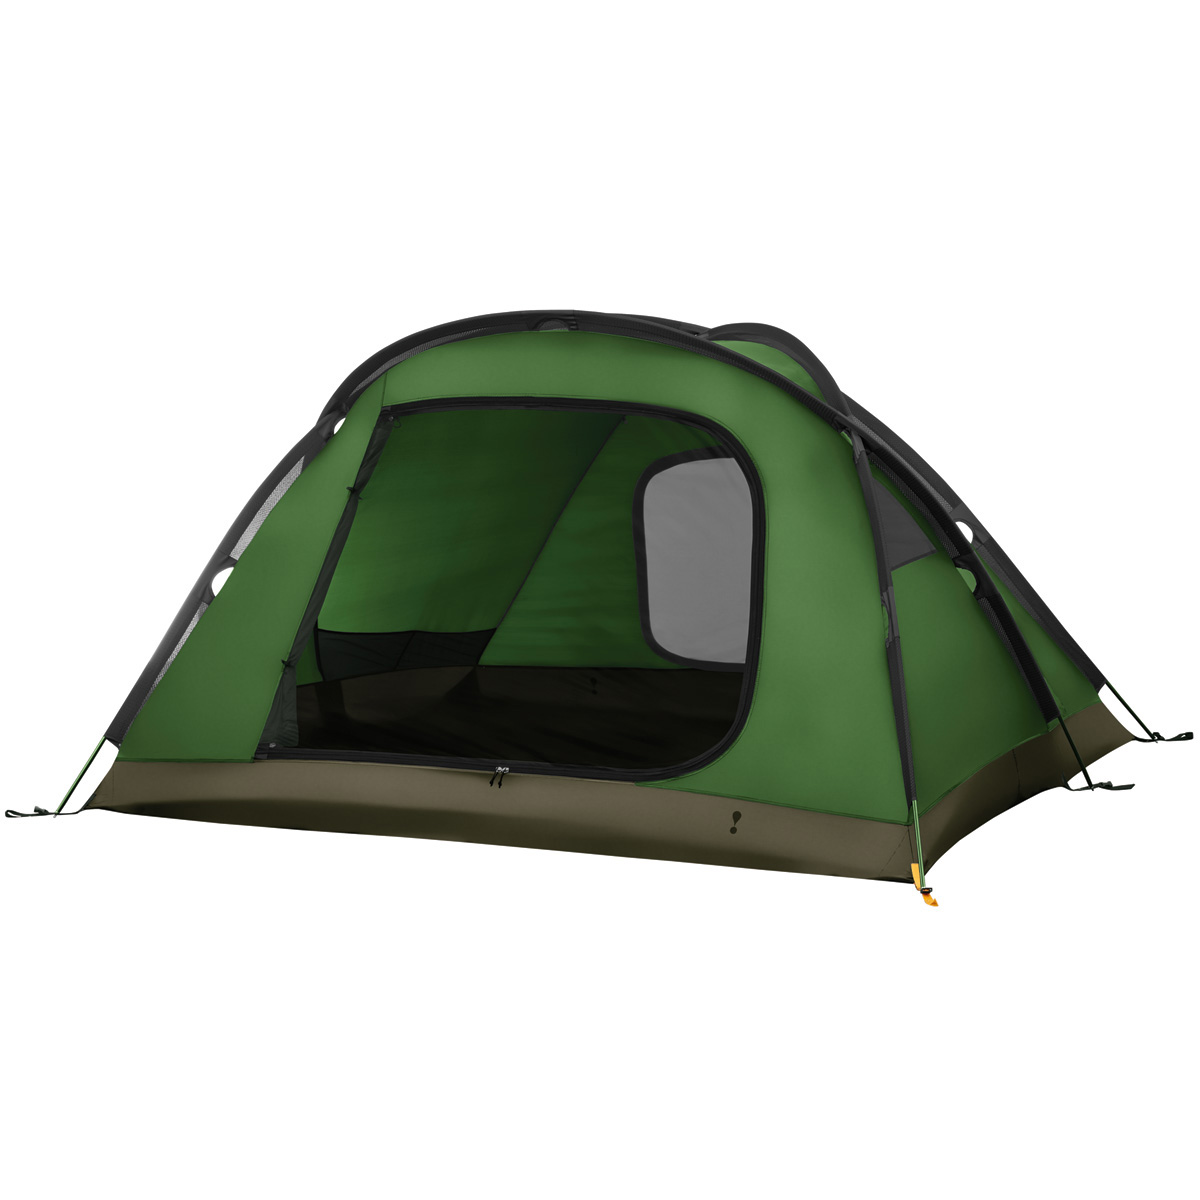 ProductImage  sc 1 st  Tents - Johnson Outdoors & Assault Outfitter 4 Person Tent | Eureka!